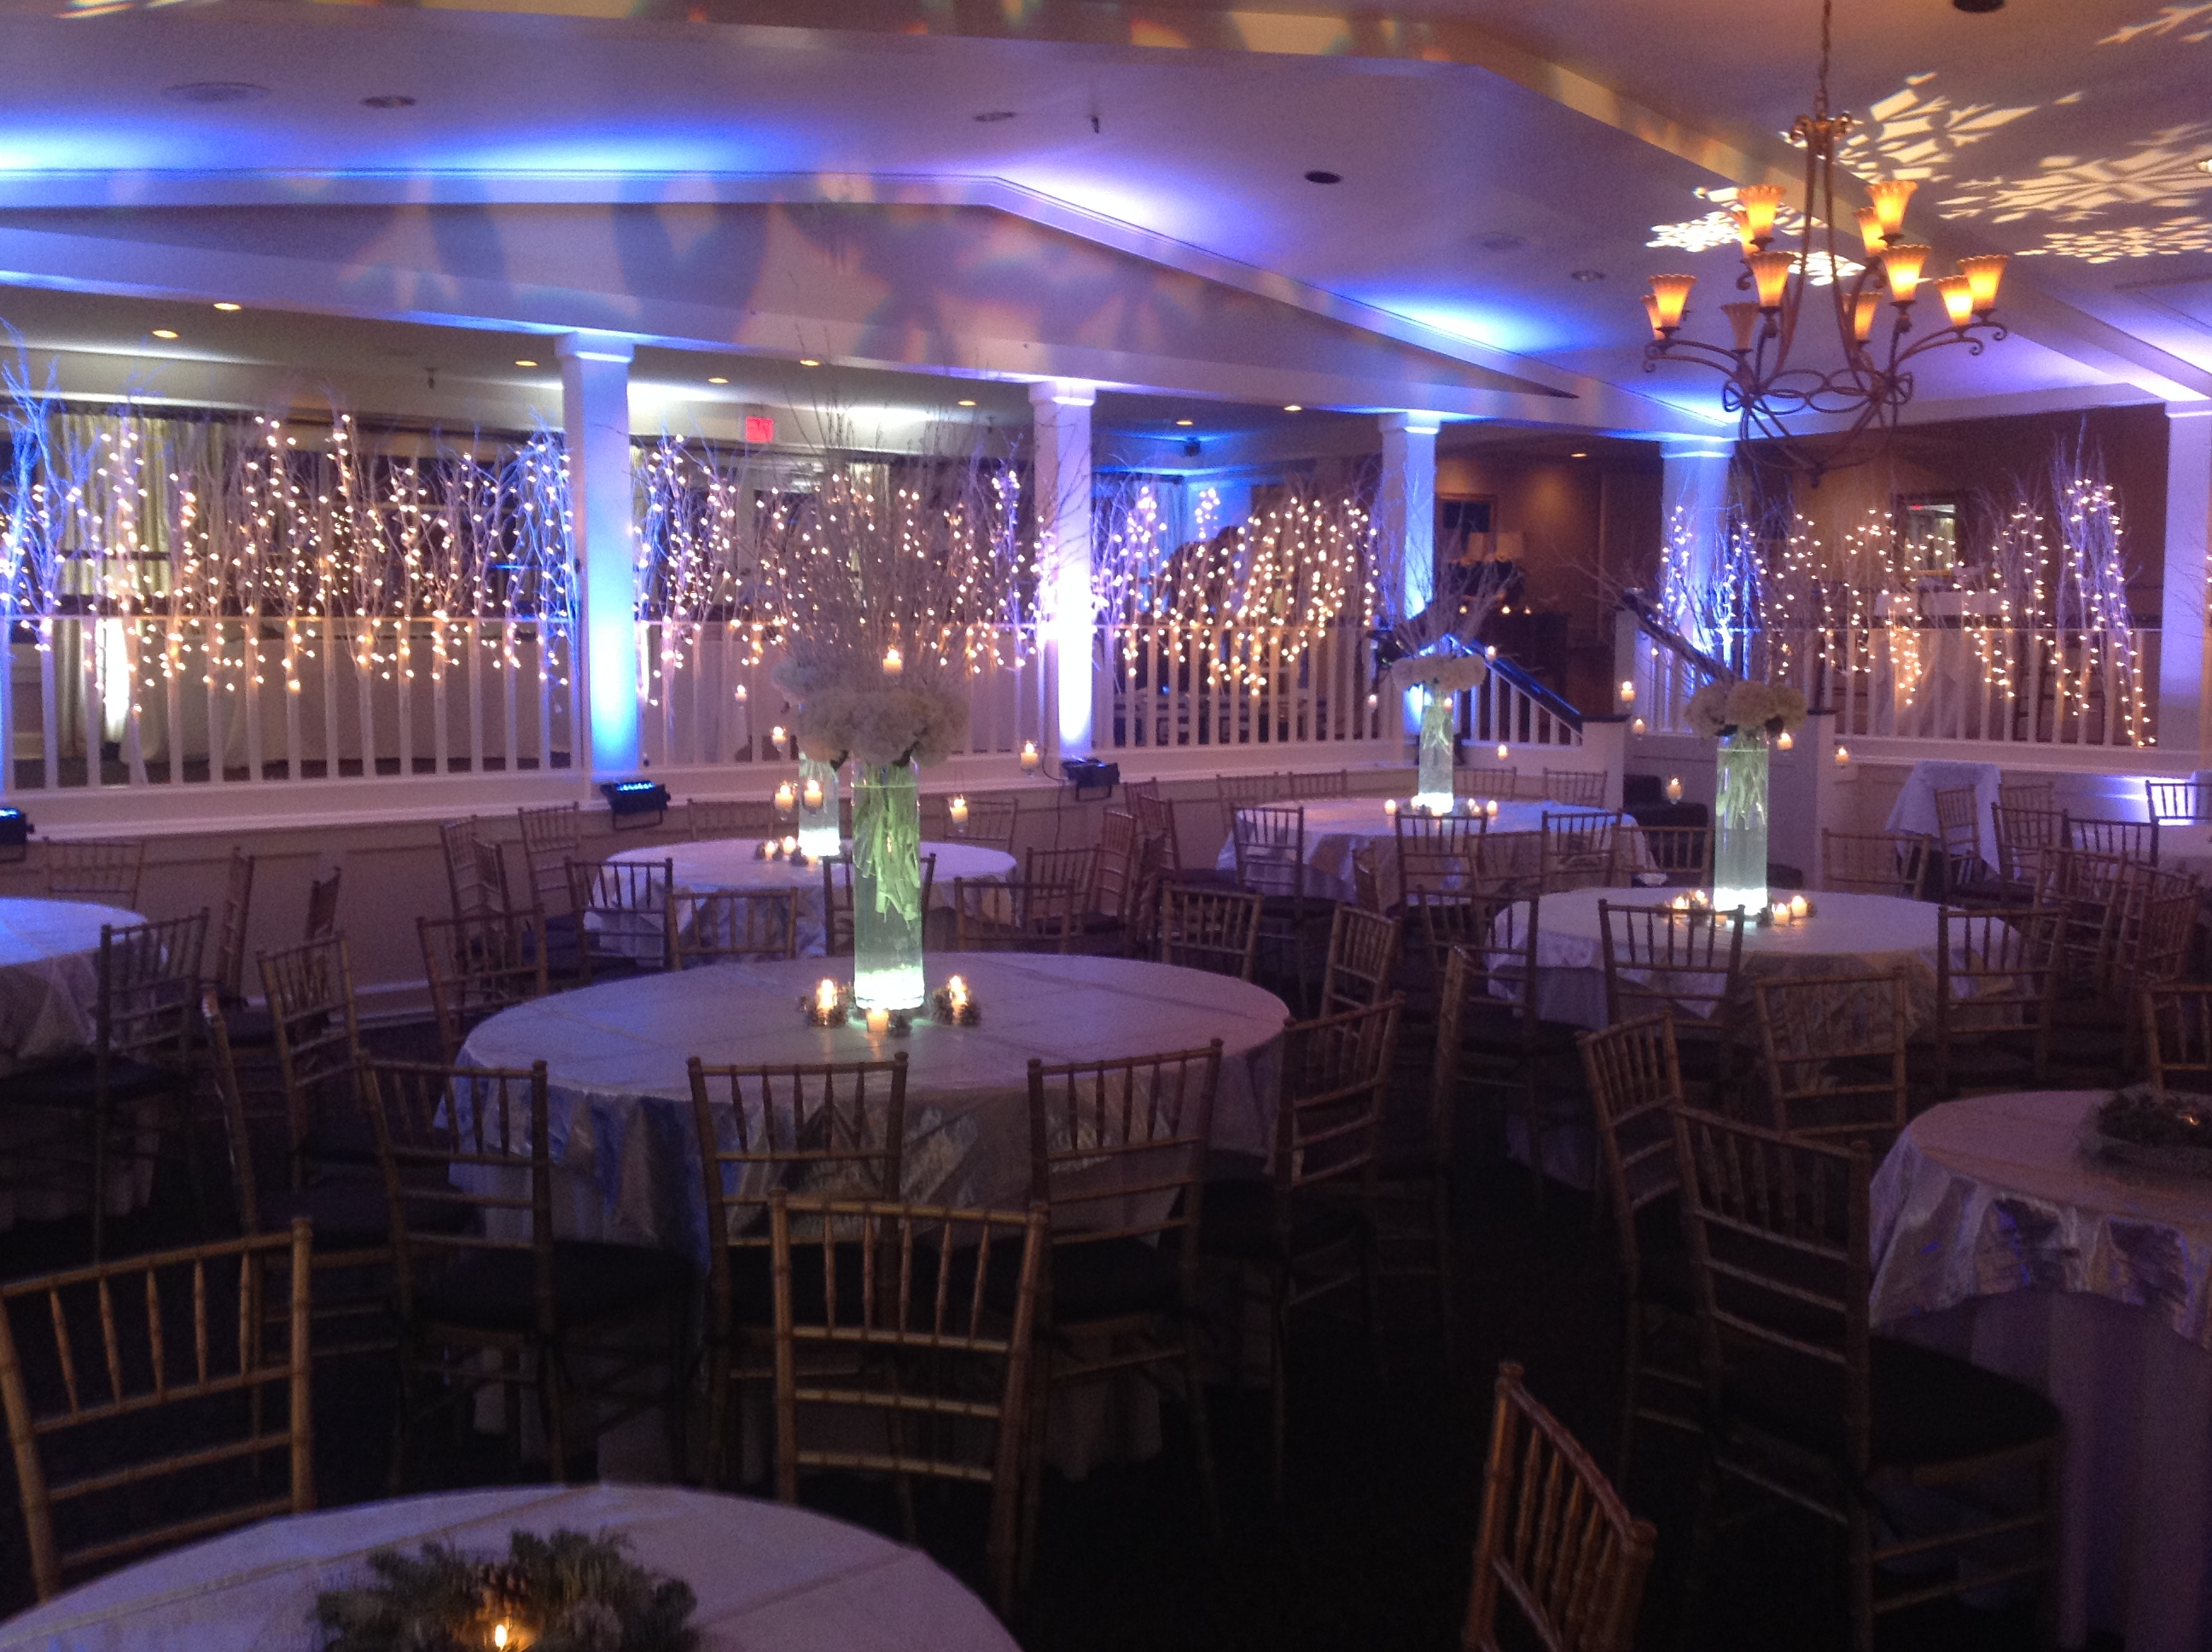 Lighting creates the mood and environment take your event from average to unforgettable with amazing lighting options from Dance to the Music. & Up Lighting for Weddings and Events u2013 Connecticut Wedding DJ ...